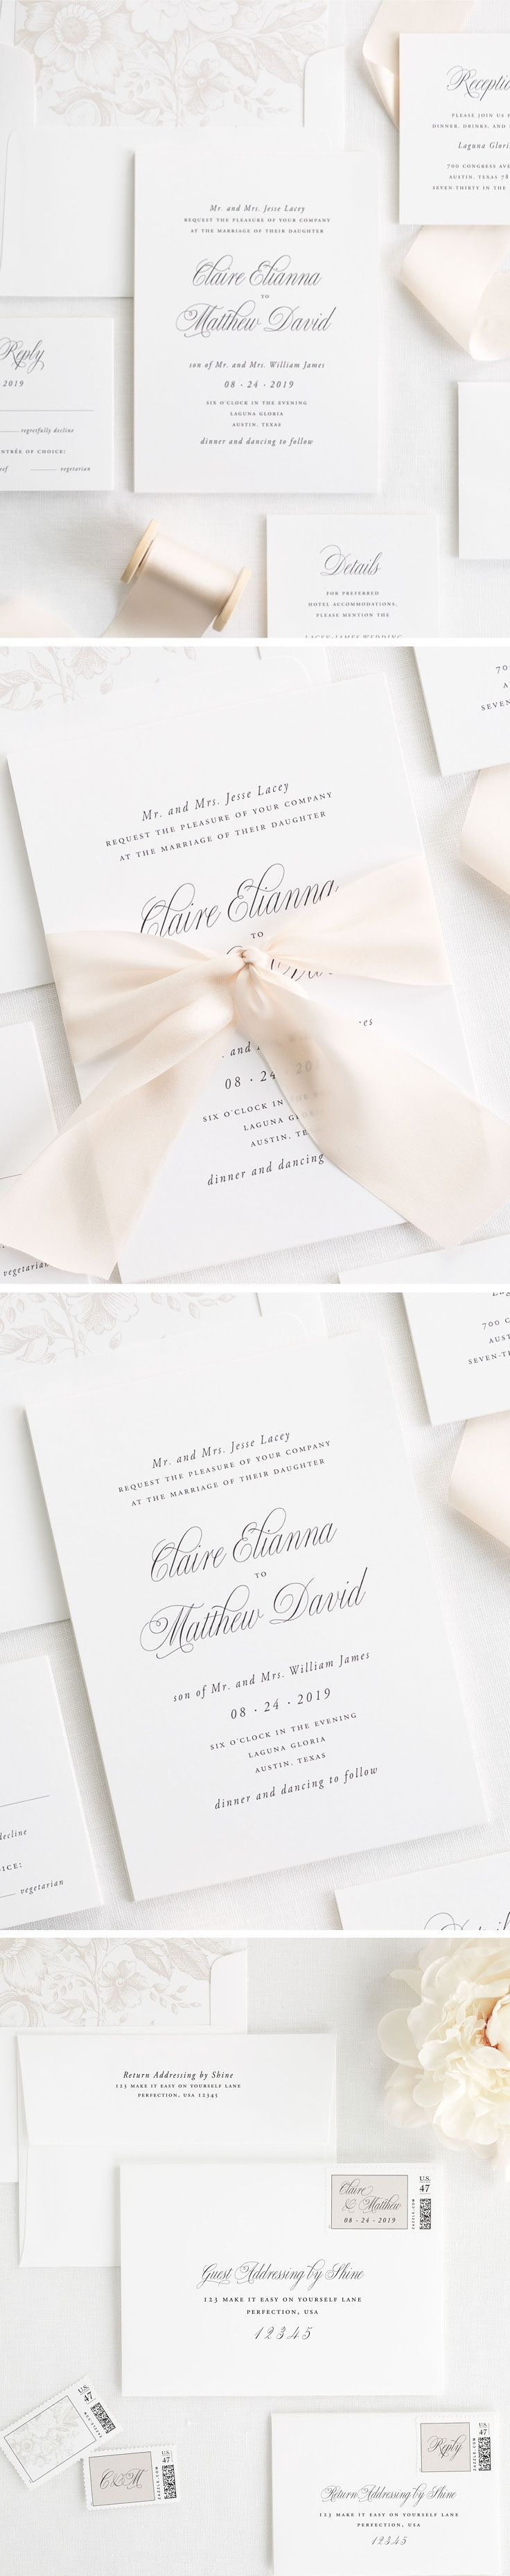 Classic and Elegant Garden Inspired Wedding Invitations. Shine offers completely customizable wording of your choice and over 40+ colors from our shine colors! Our Garden Elegance Wedding Suite is on white matte paper with a floral envelope liner in mocha